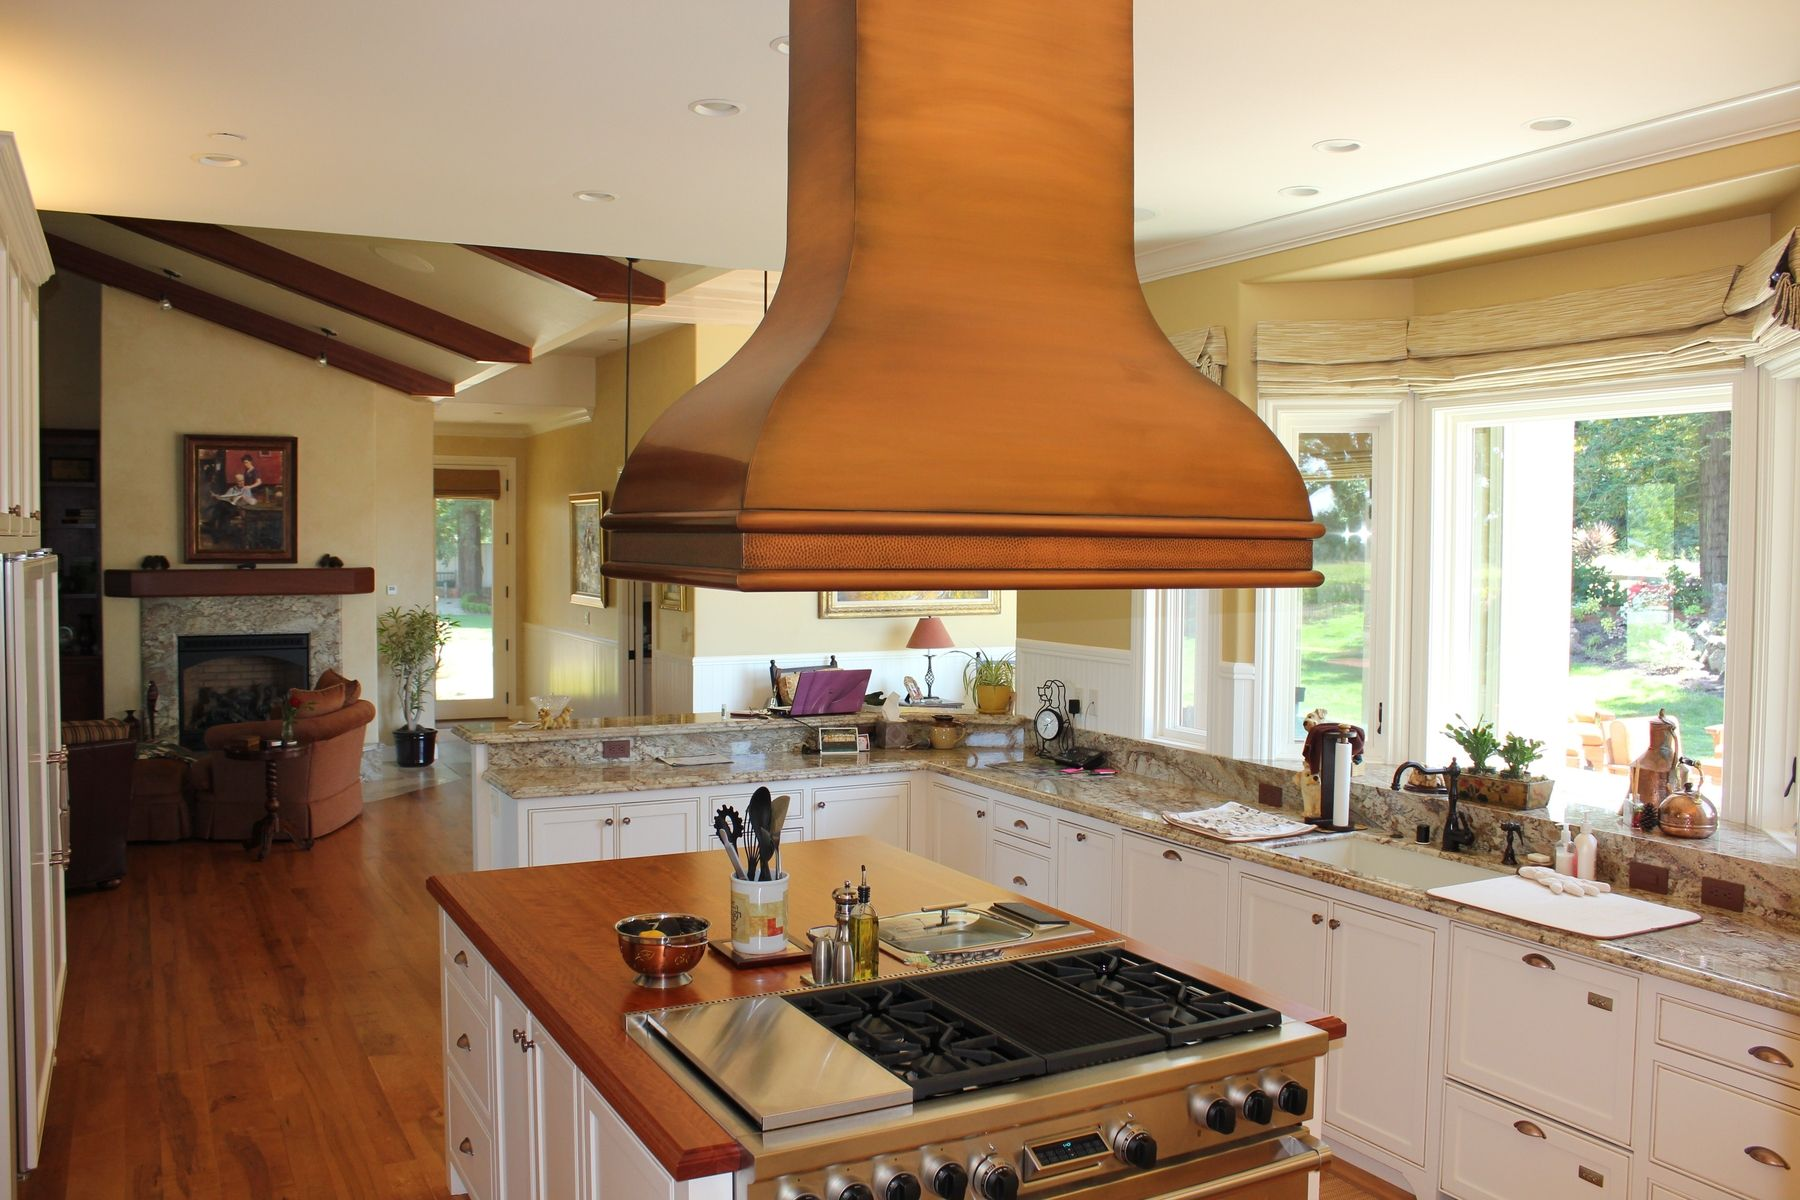 Hand Made Copper Range Hood By Mio Metals Custommade Com